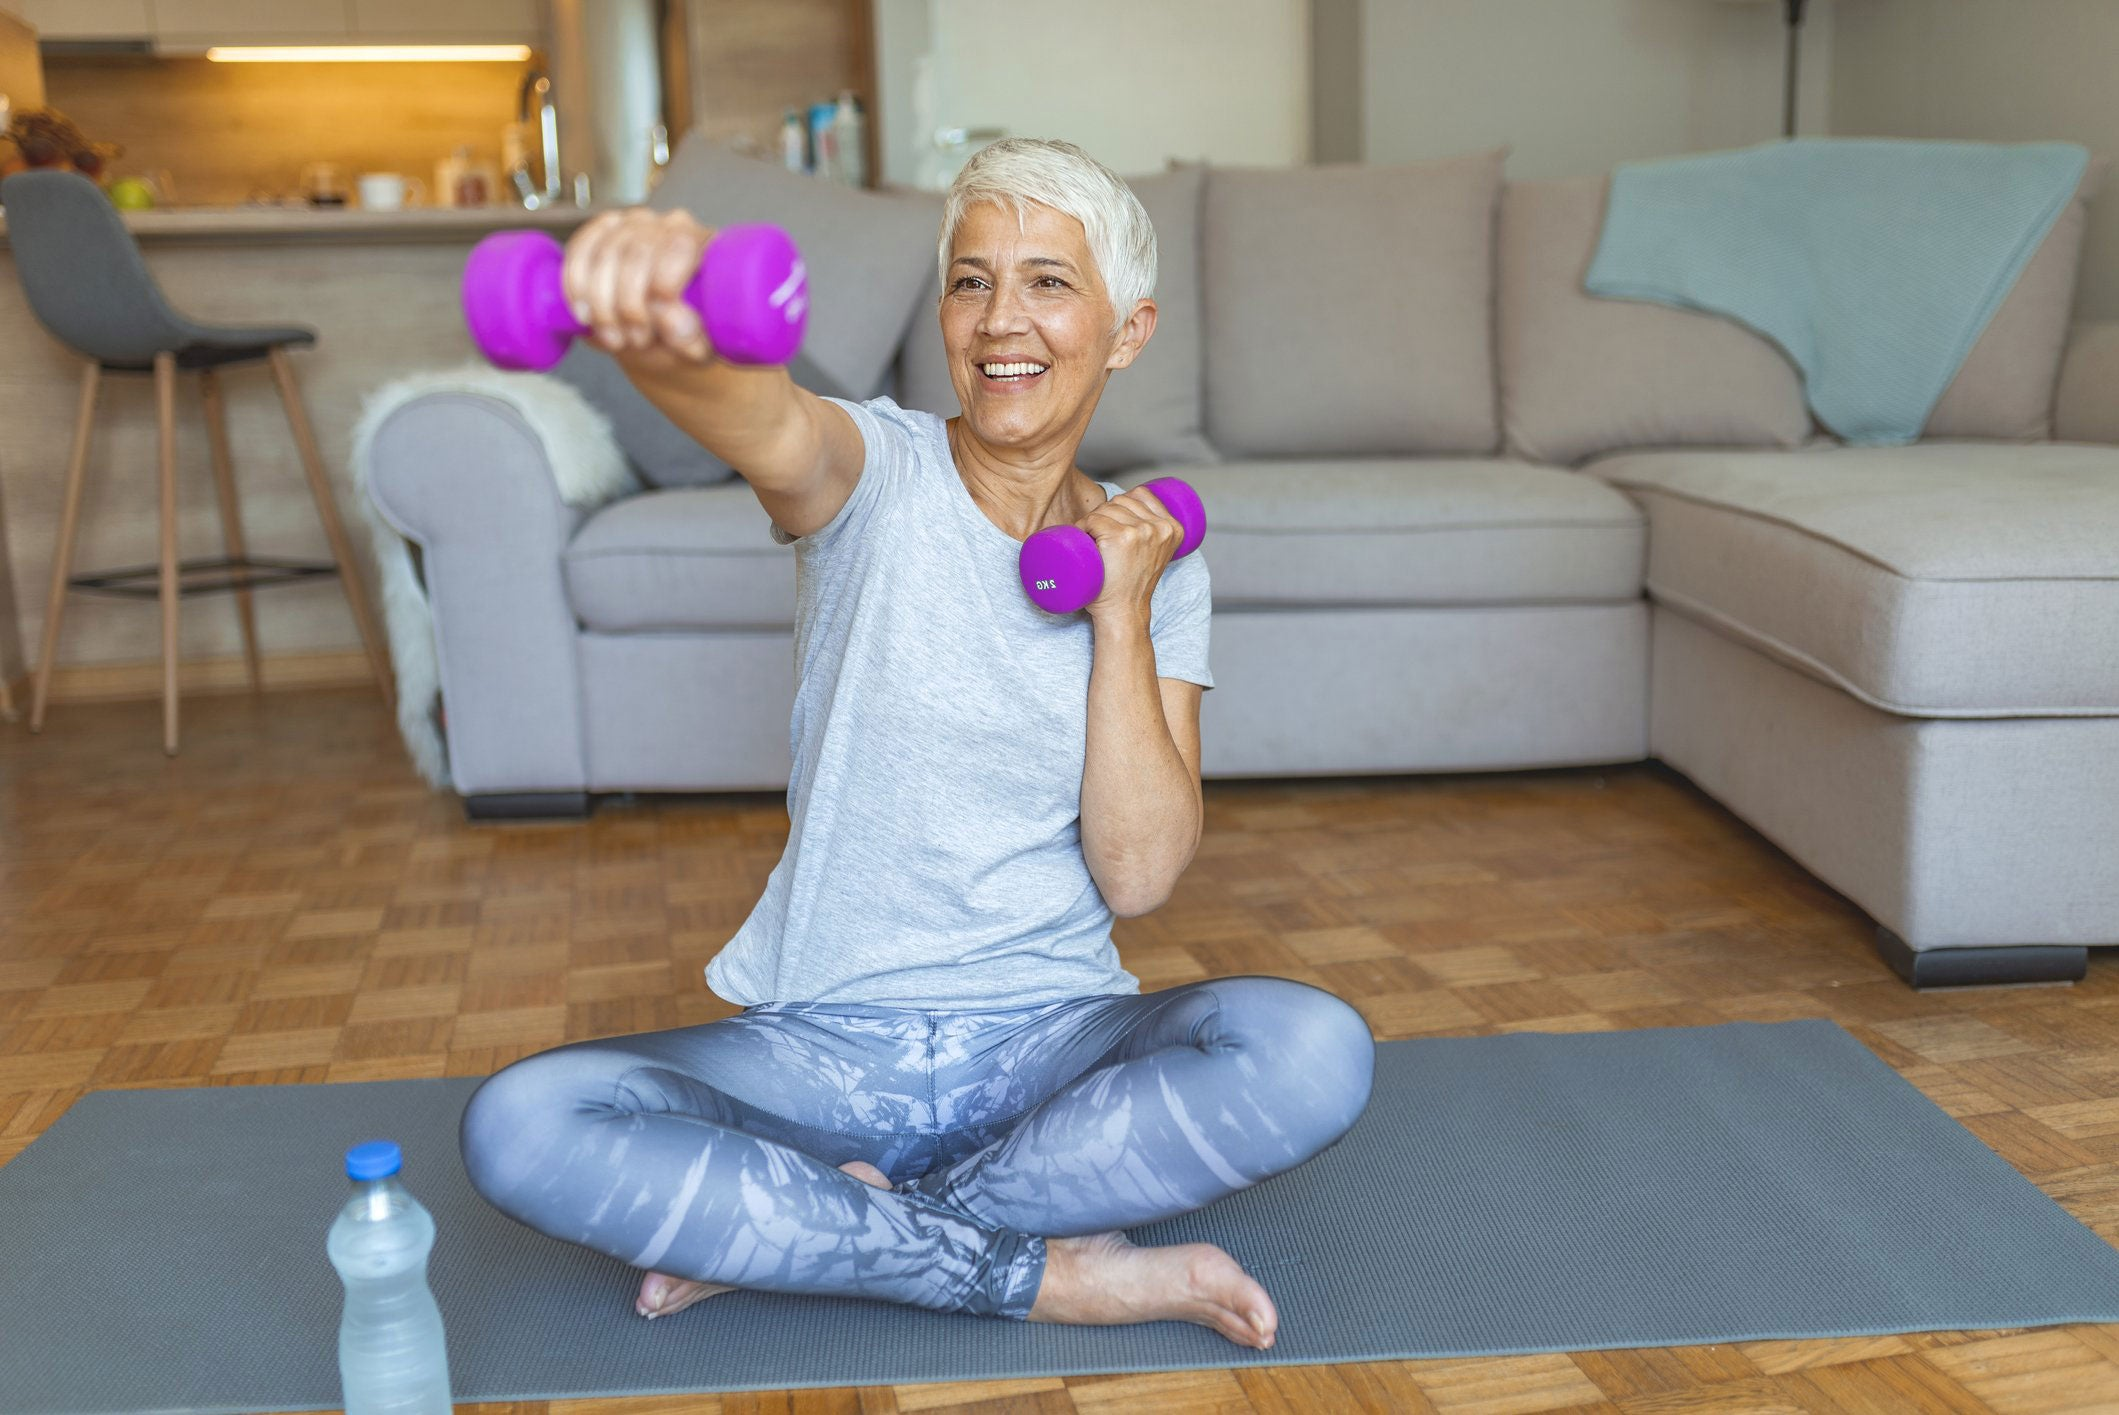 happy middle-aged woman exercising in living room at home